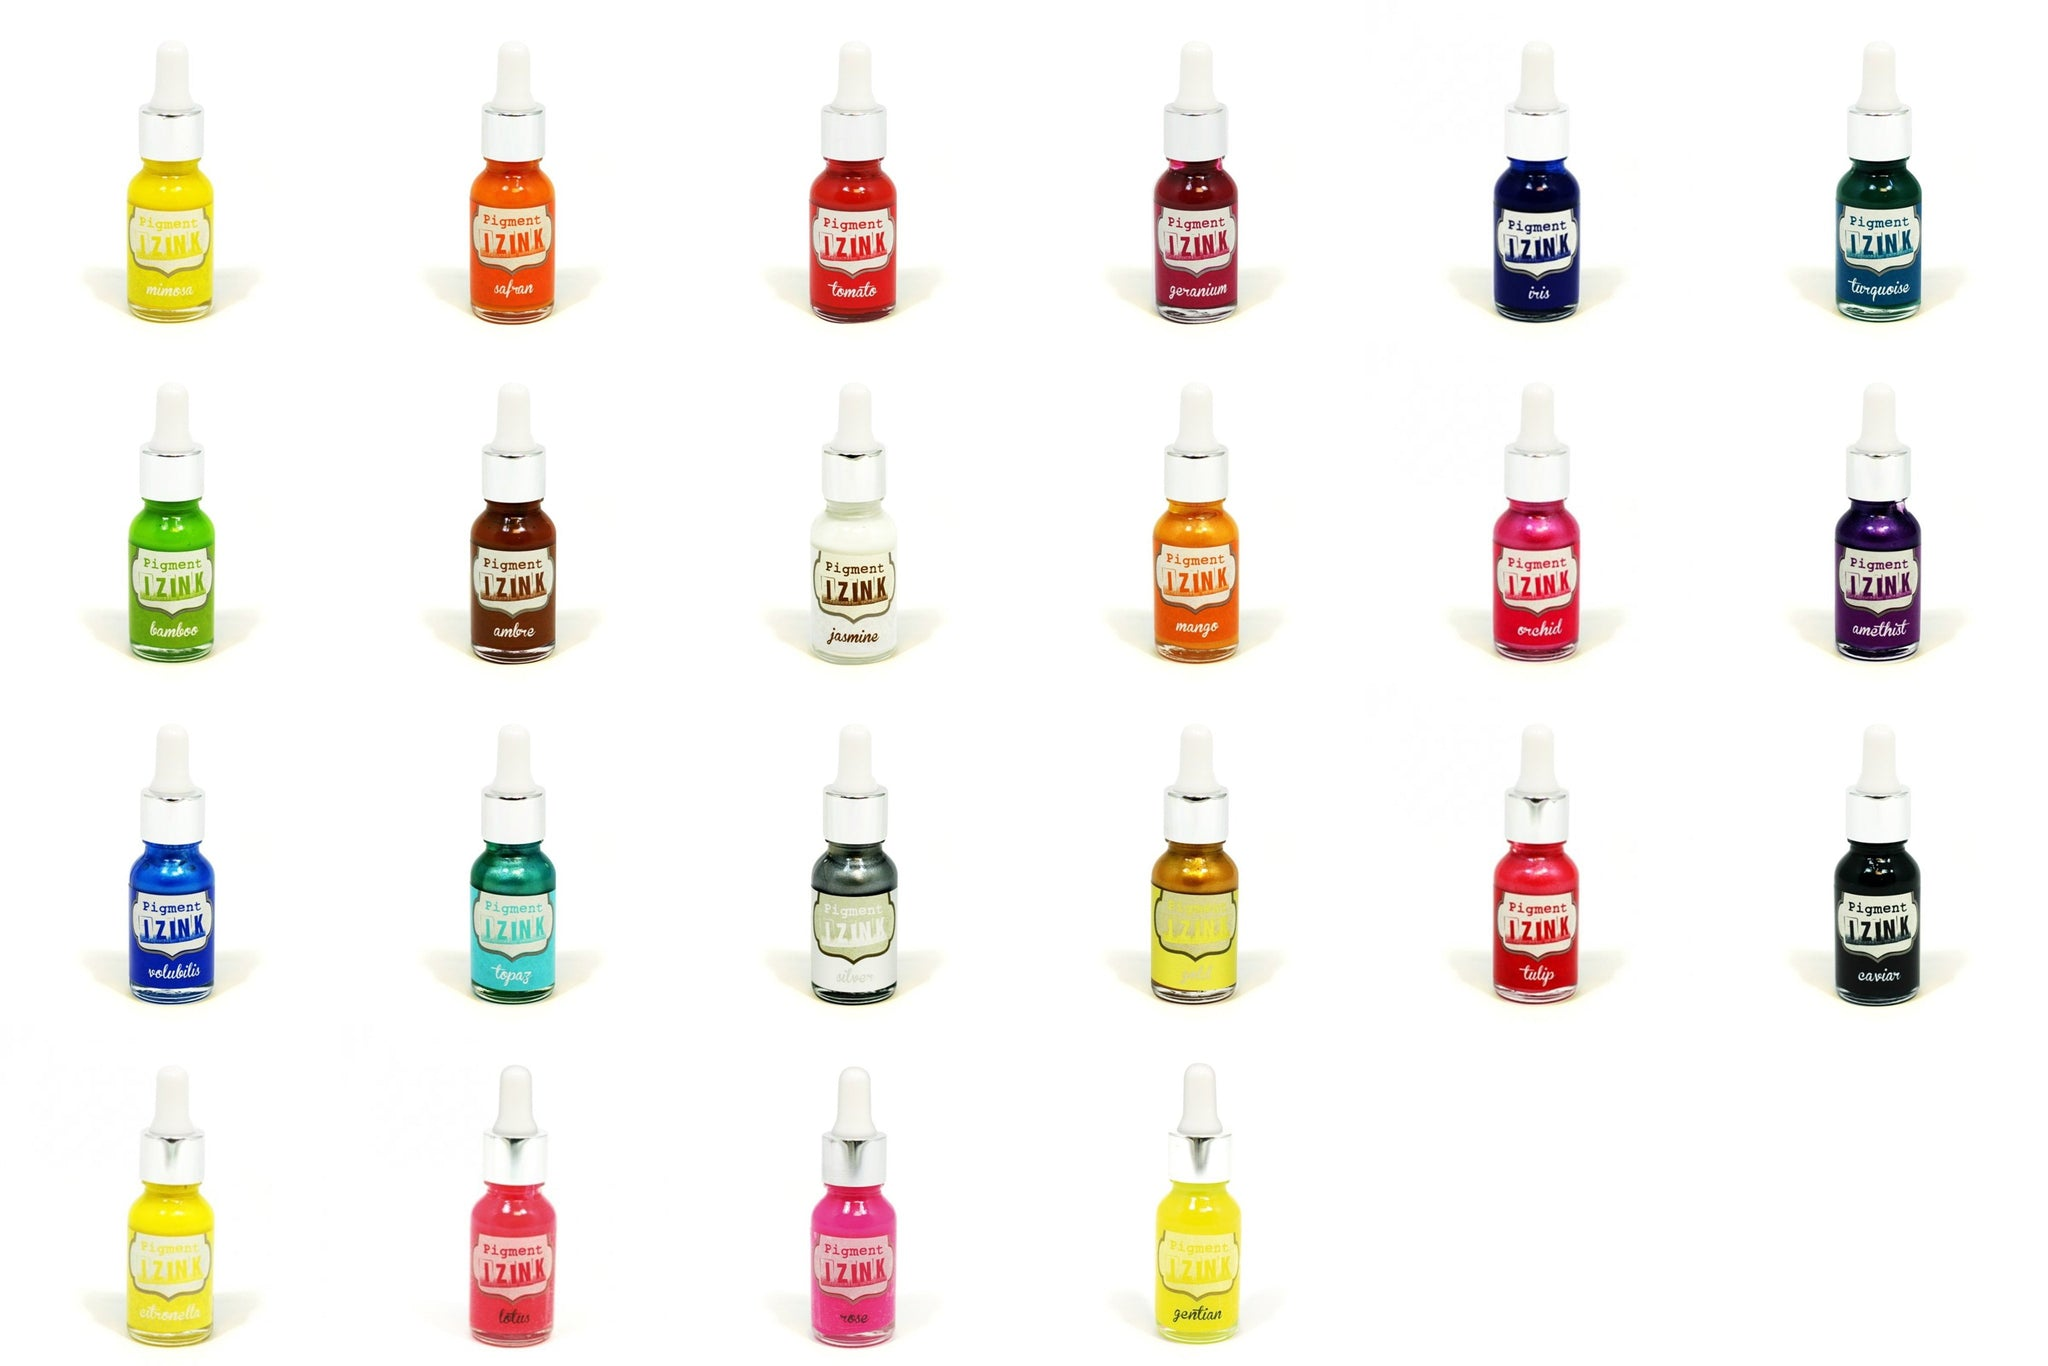 22 x Aladine All Colour Water Based Izink Pigment Ink Scrapbooking Stamping 15ml - Hobby & Crafts